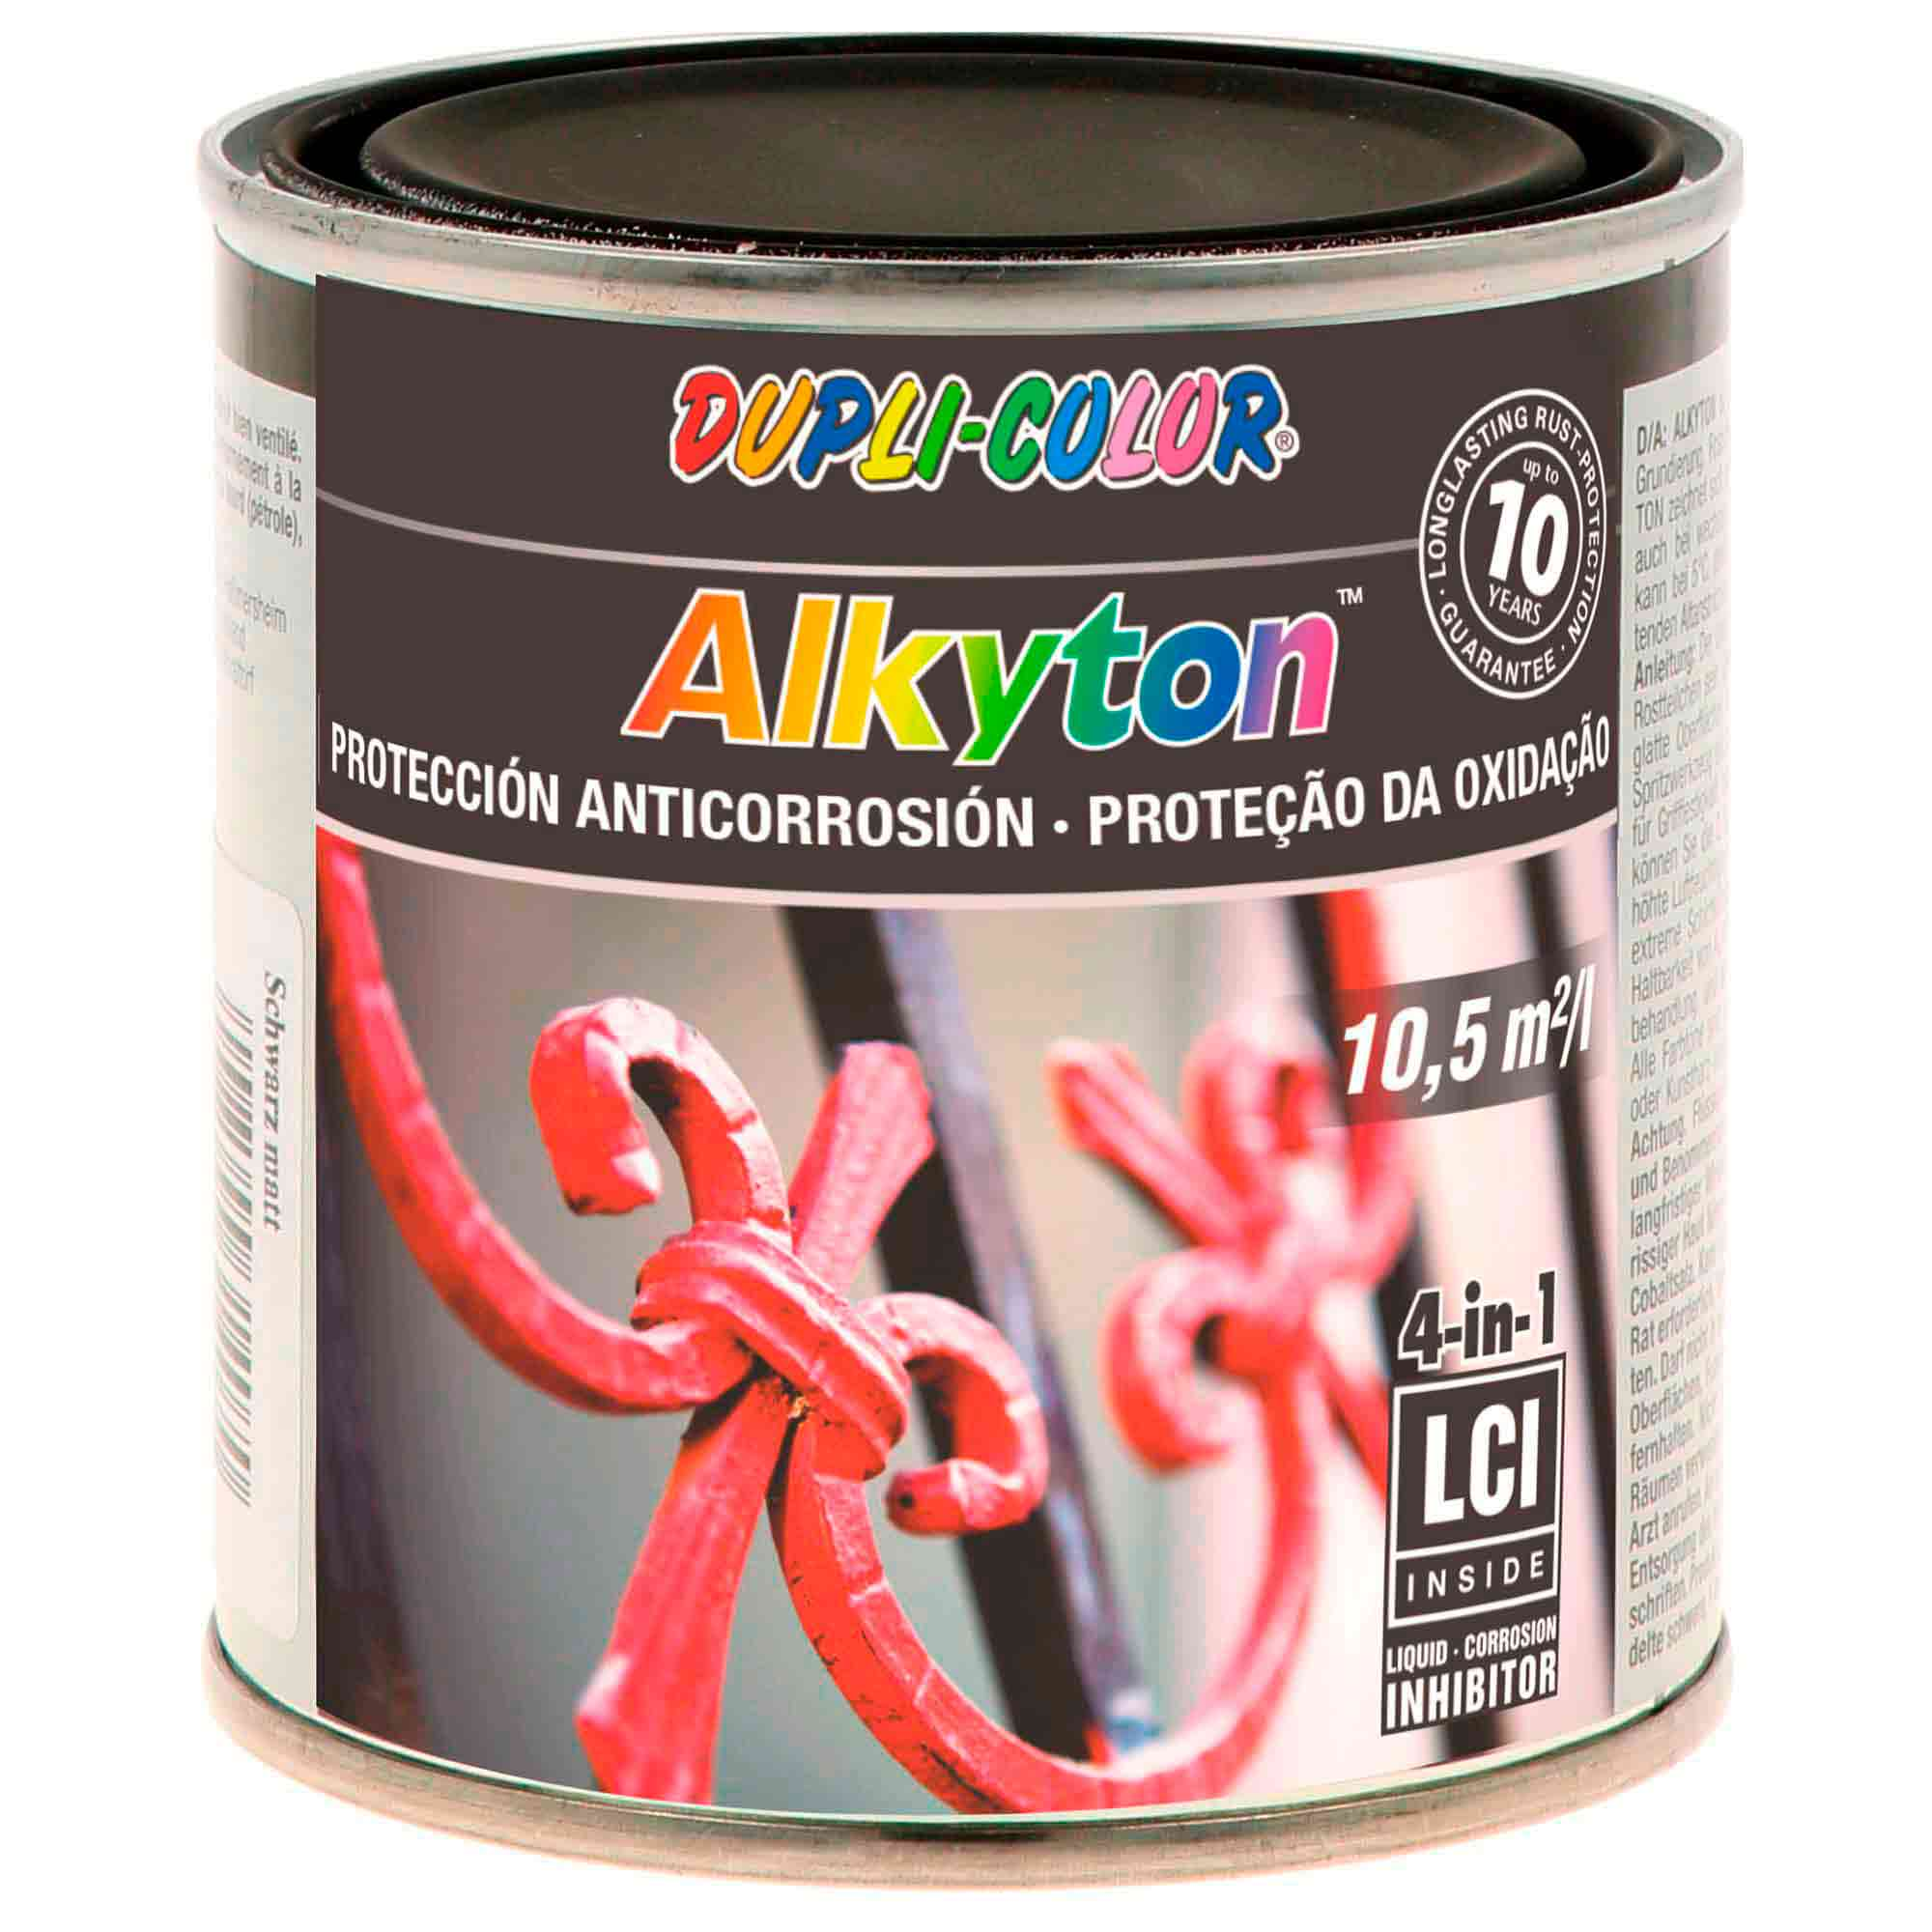 Tinta Antiferrugem Alkyton Preto Mate - RAL 9005 250ml